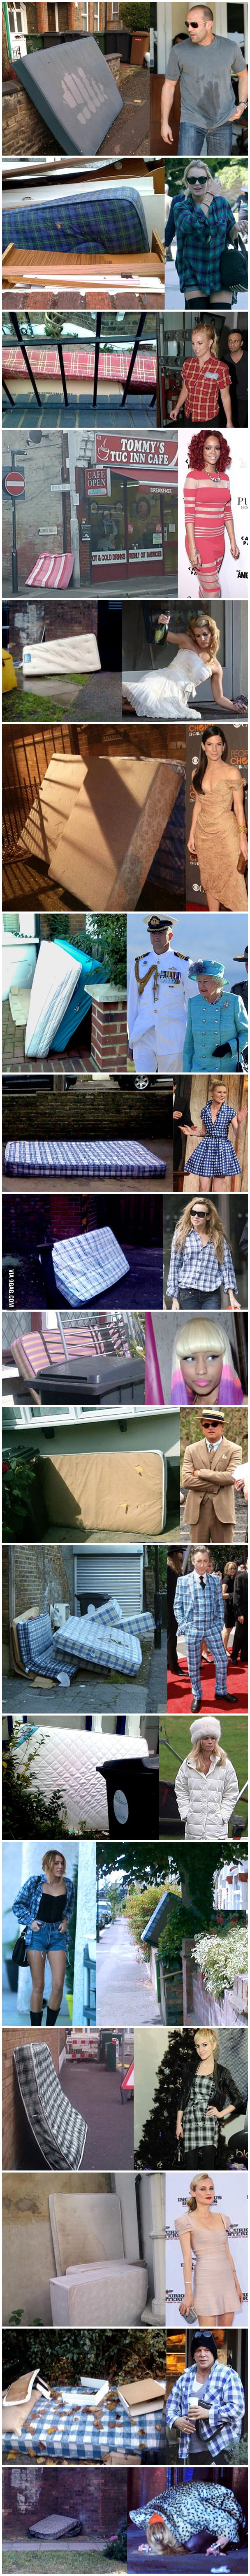 18 celebrities who look like mattresses